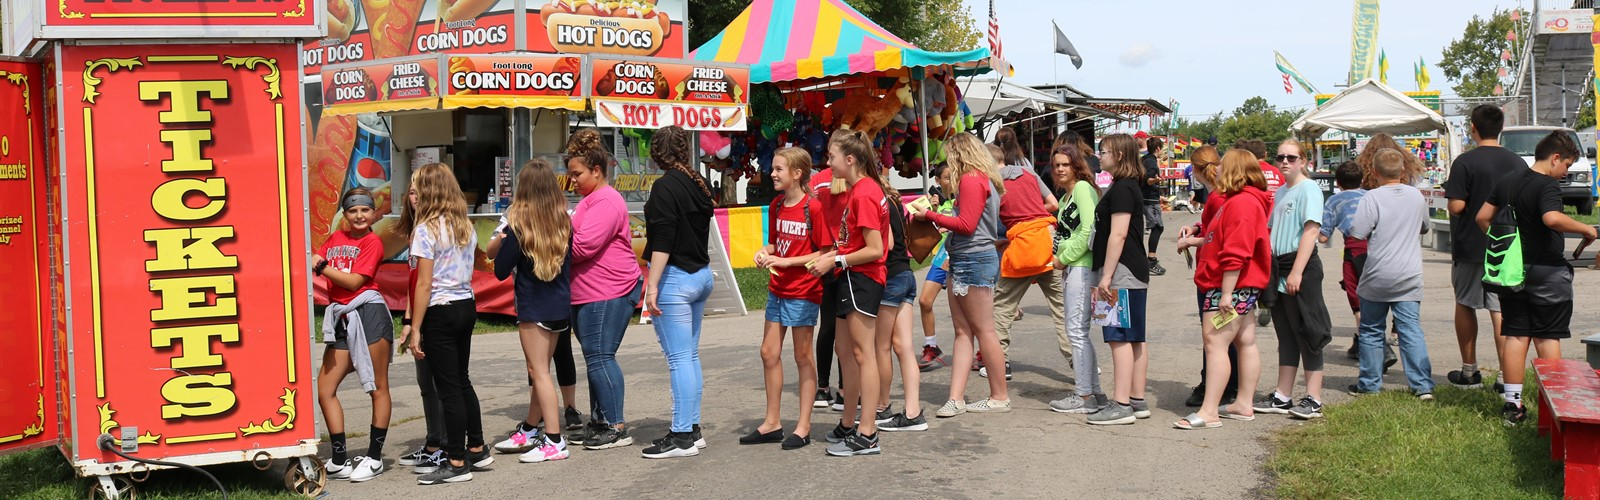 7th grade students wait to purchase tickets at the fair